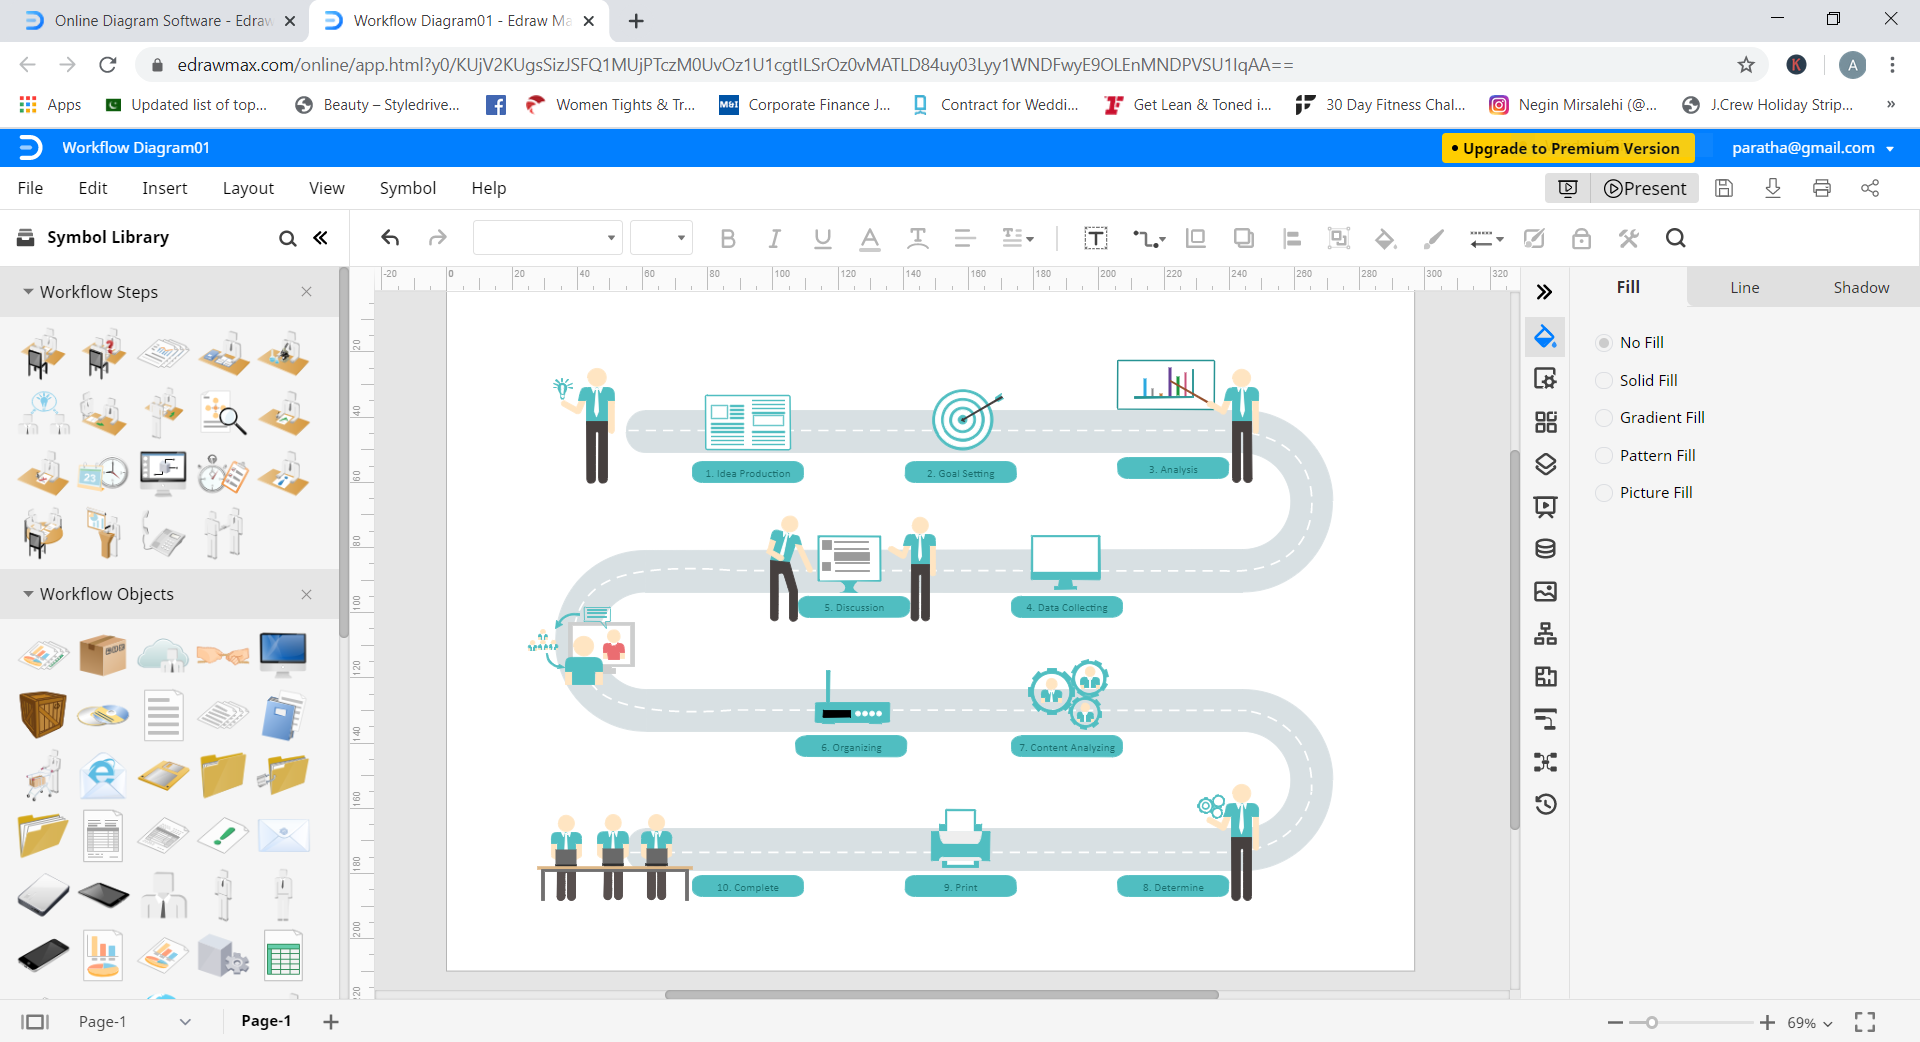 How to Create a Workflow Diagram Online - Edraw Max